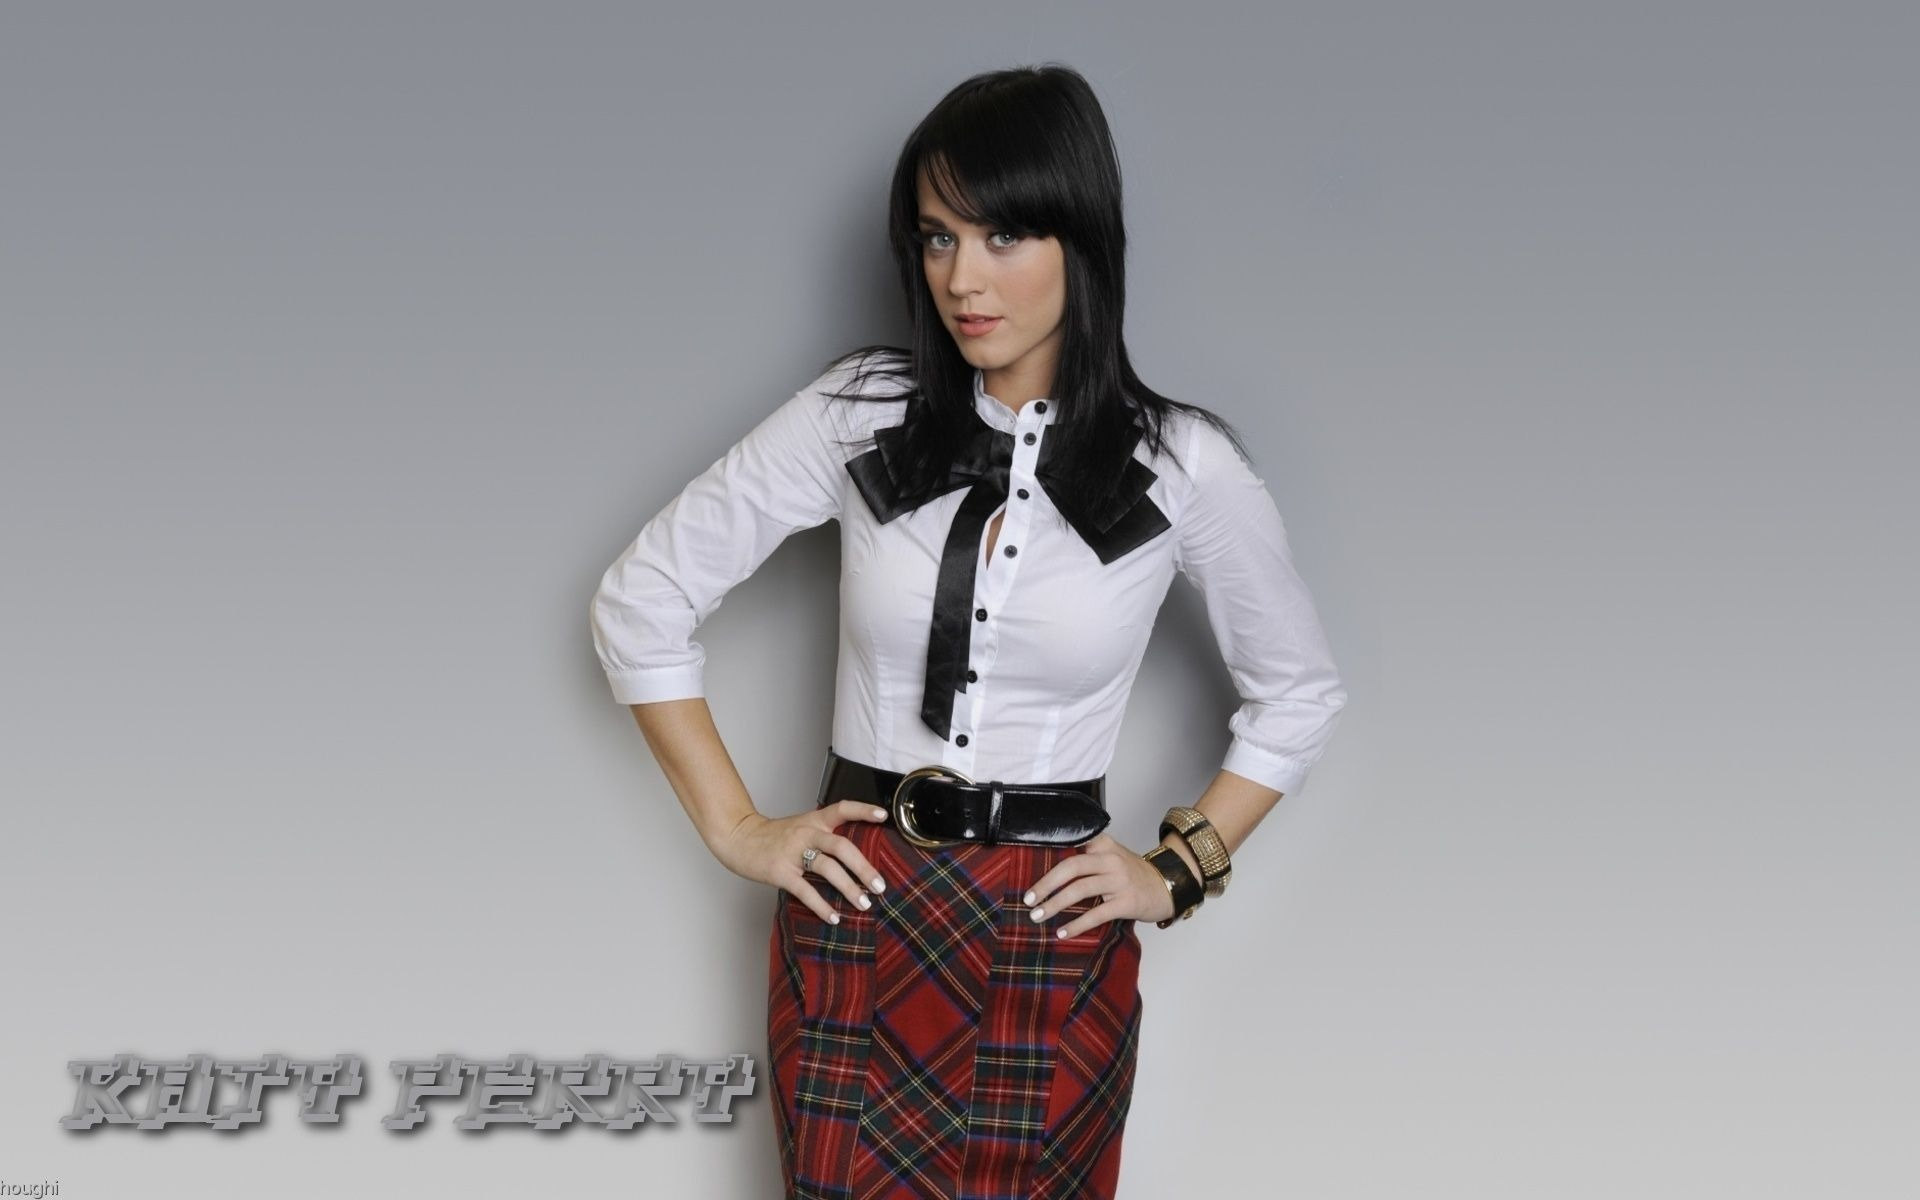 Katy Perry #004 - 1920x1200 Wallpapers Pictures Photos Images